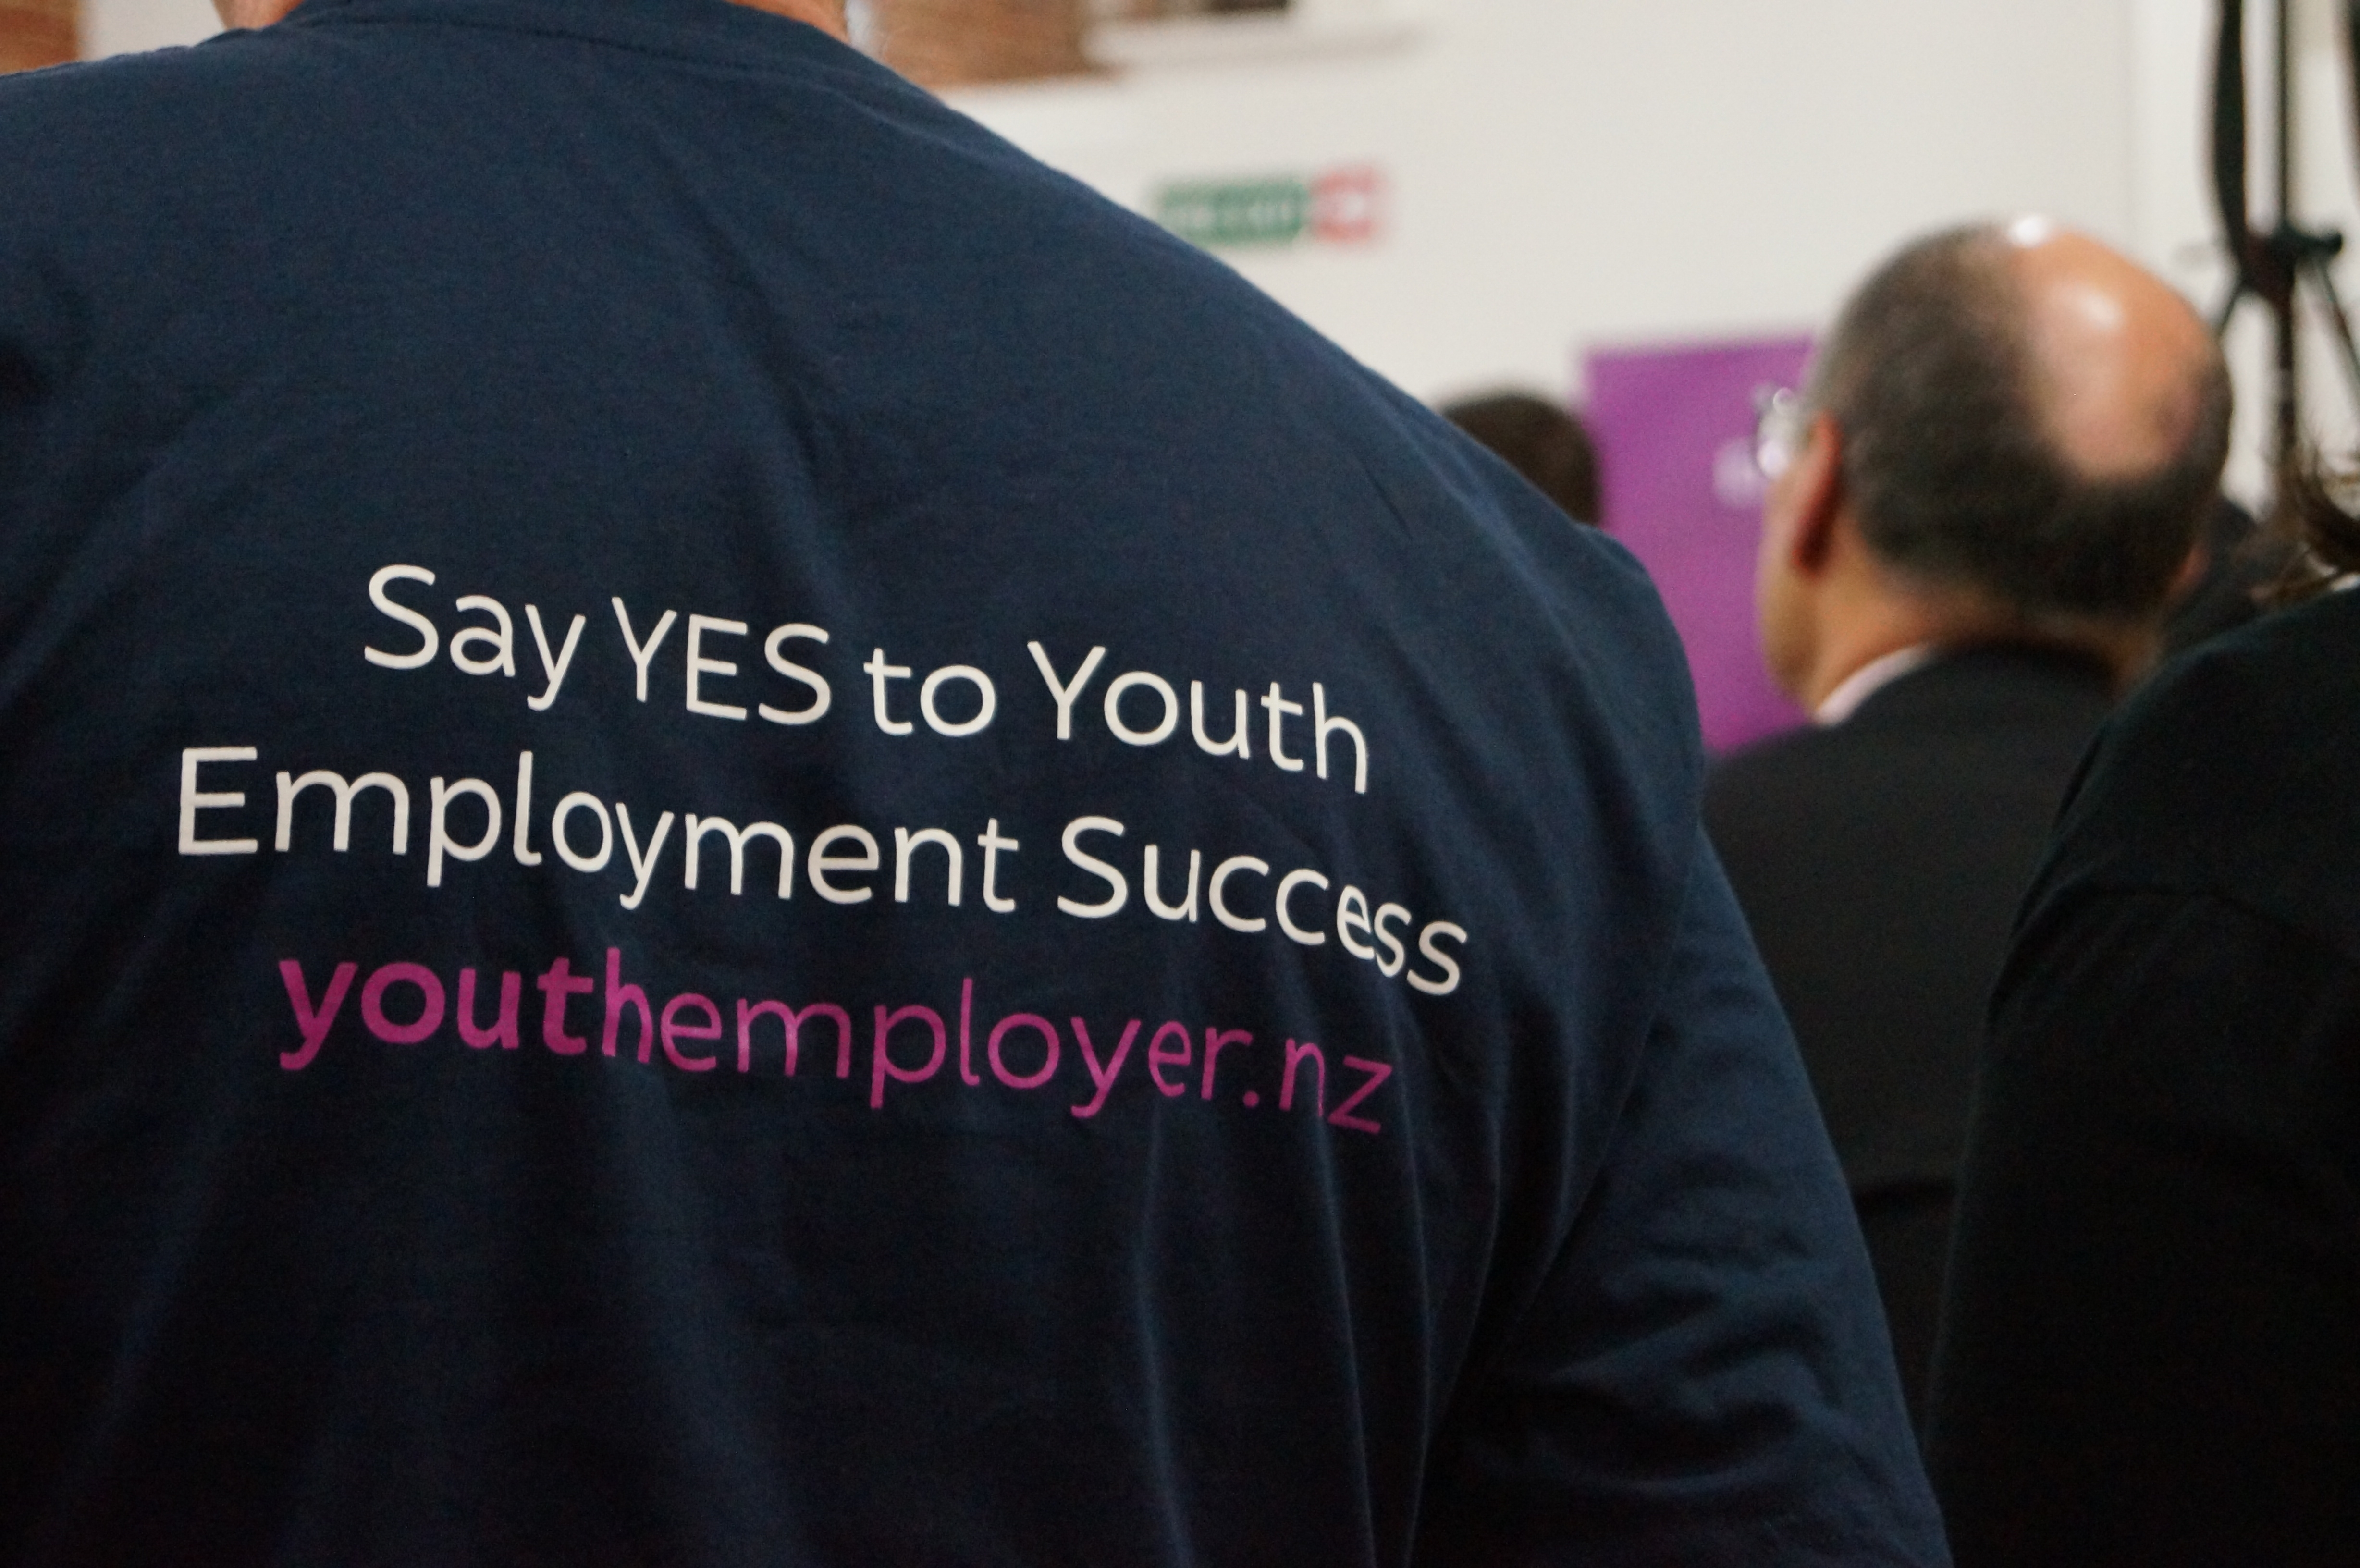 Say YES to Youth Employment Success